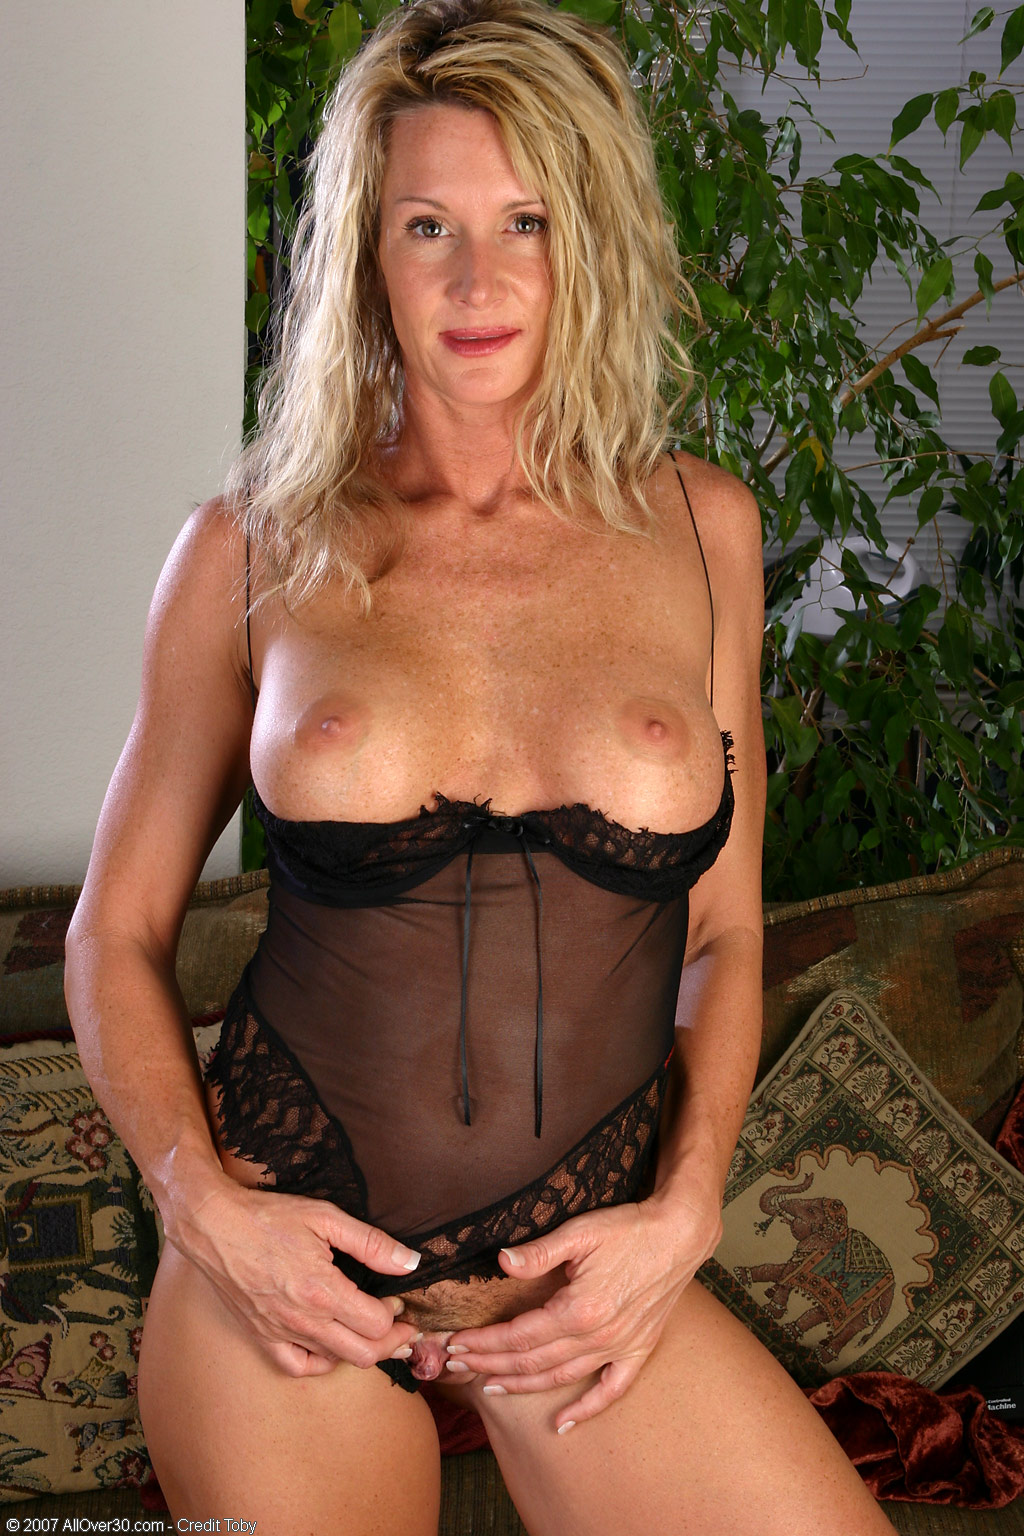 Allover30Freecom - Featuring Ingrid - High Quality Mature -8248